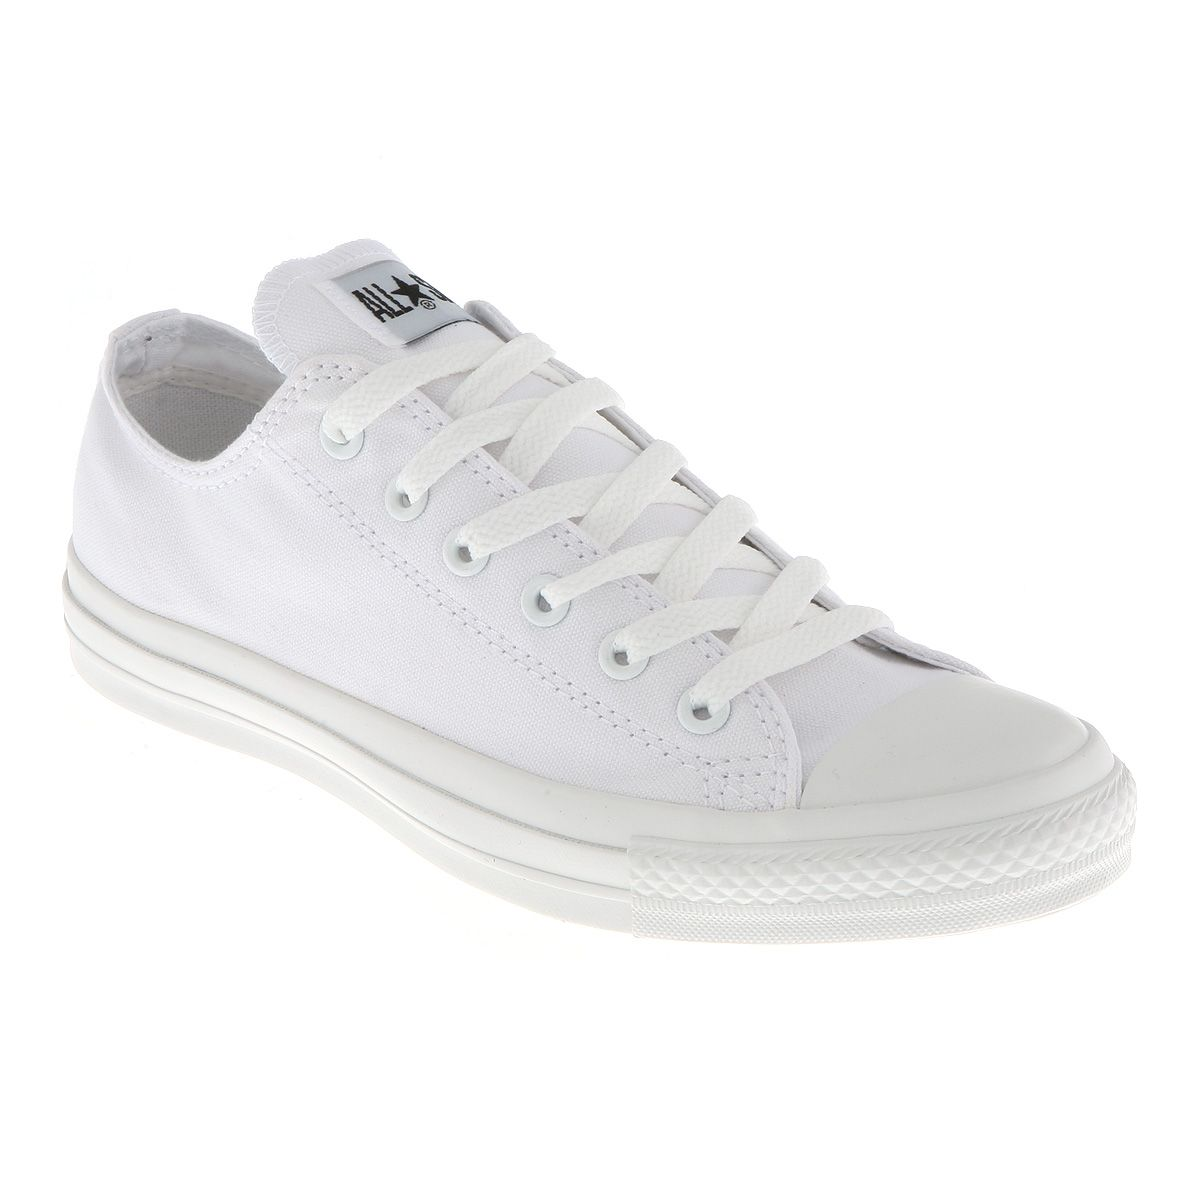 4954a41c981a all white low converse